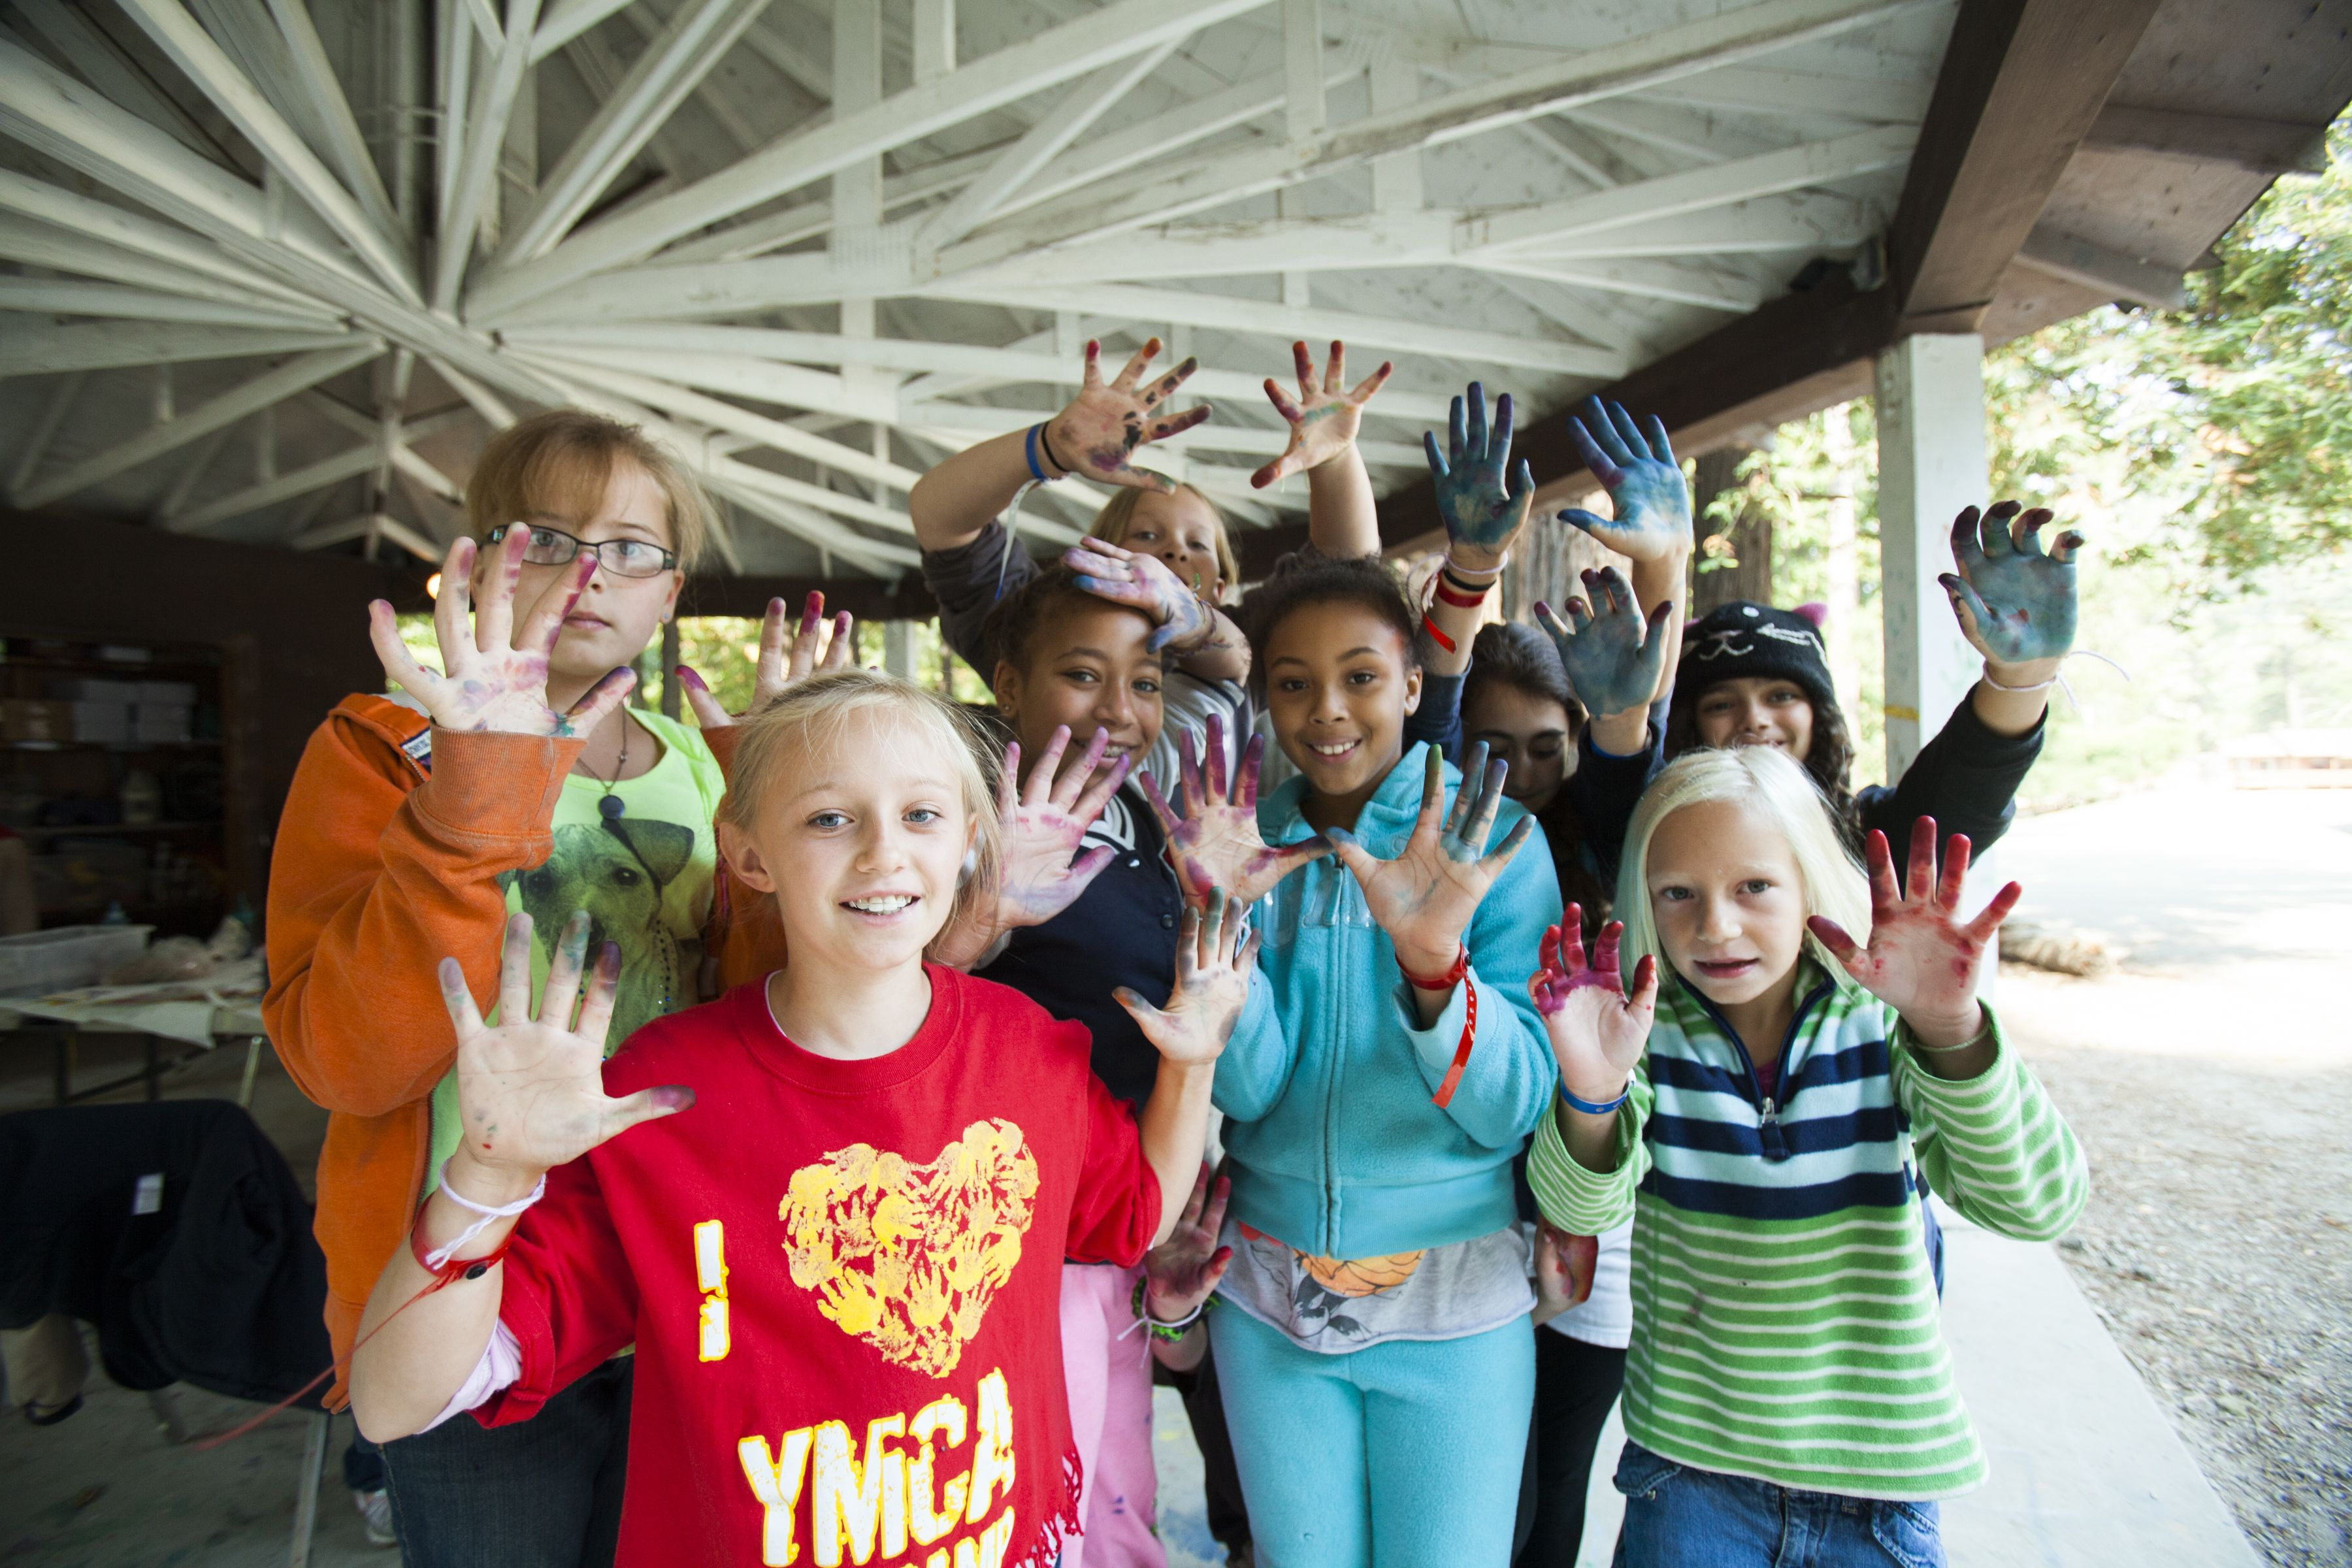 Camplomamar ymca ymca of the east bay ymca day camp